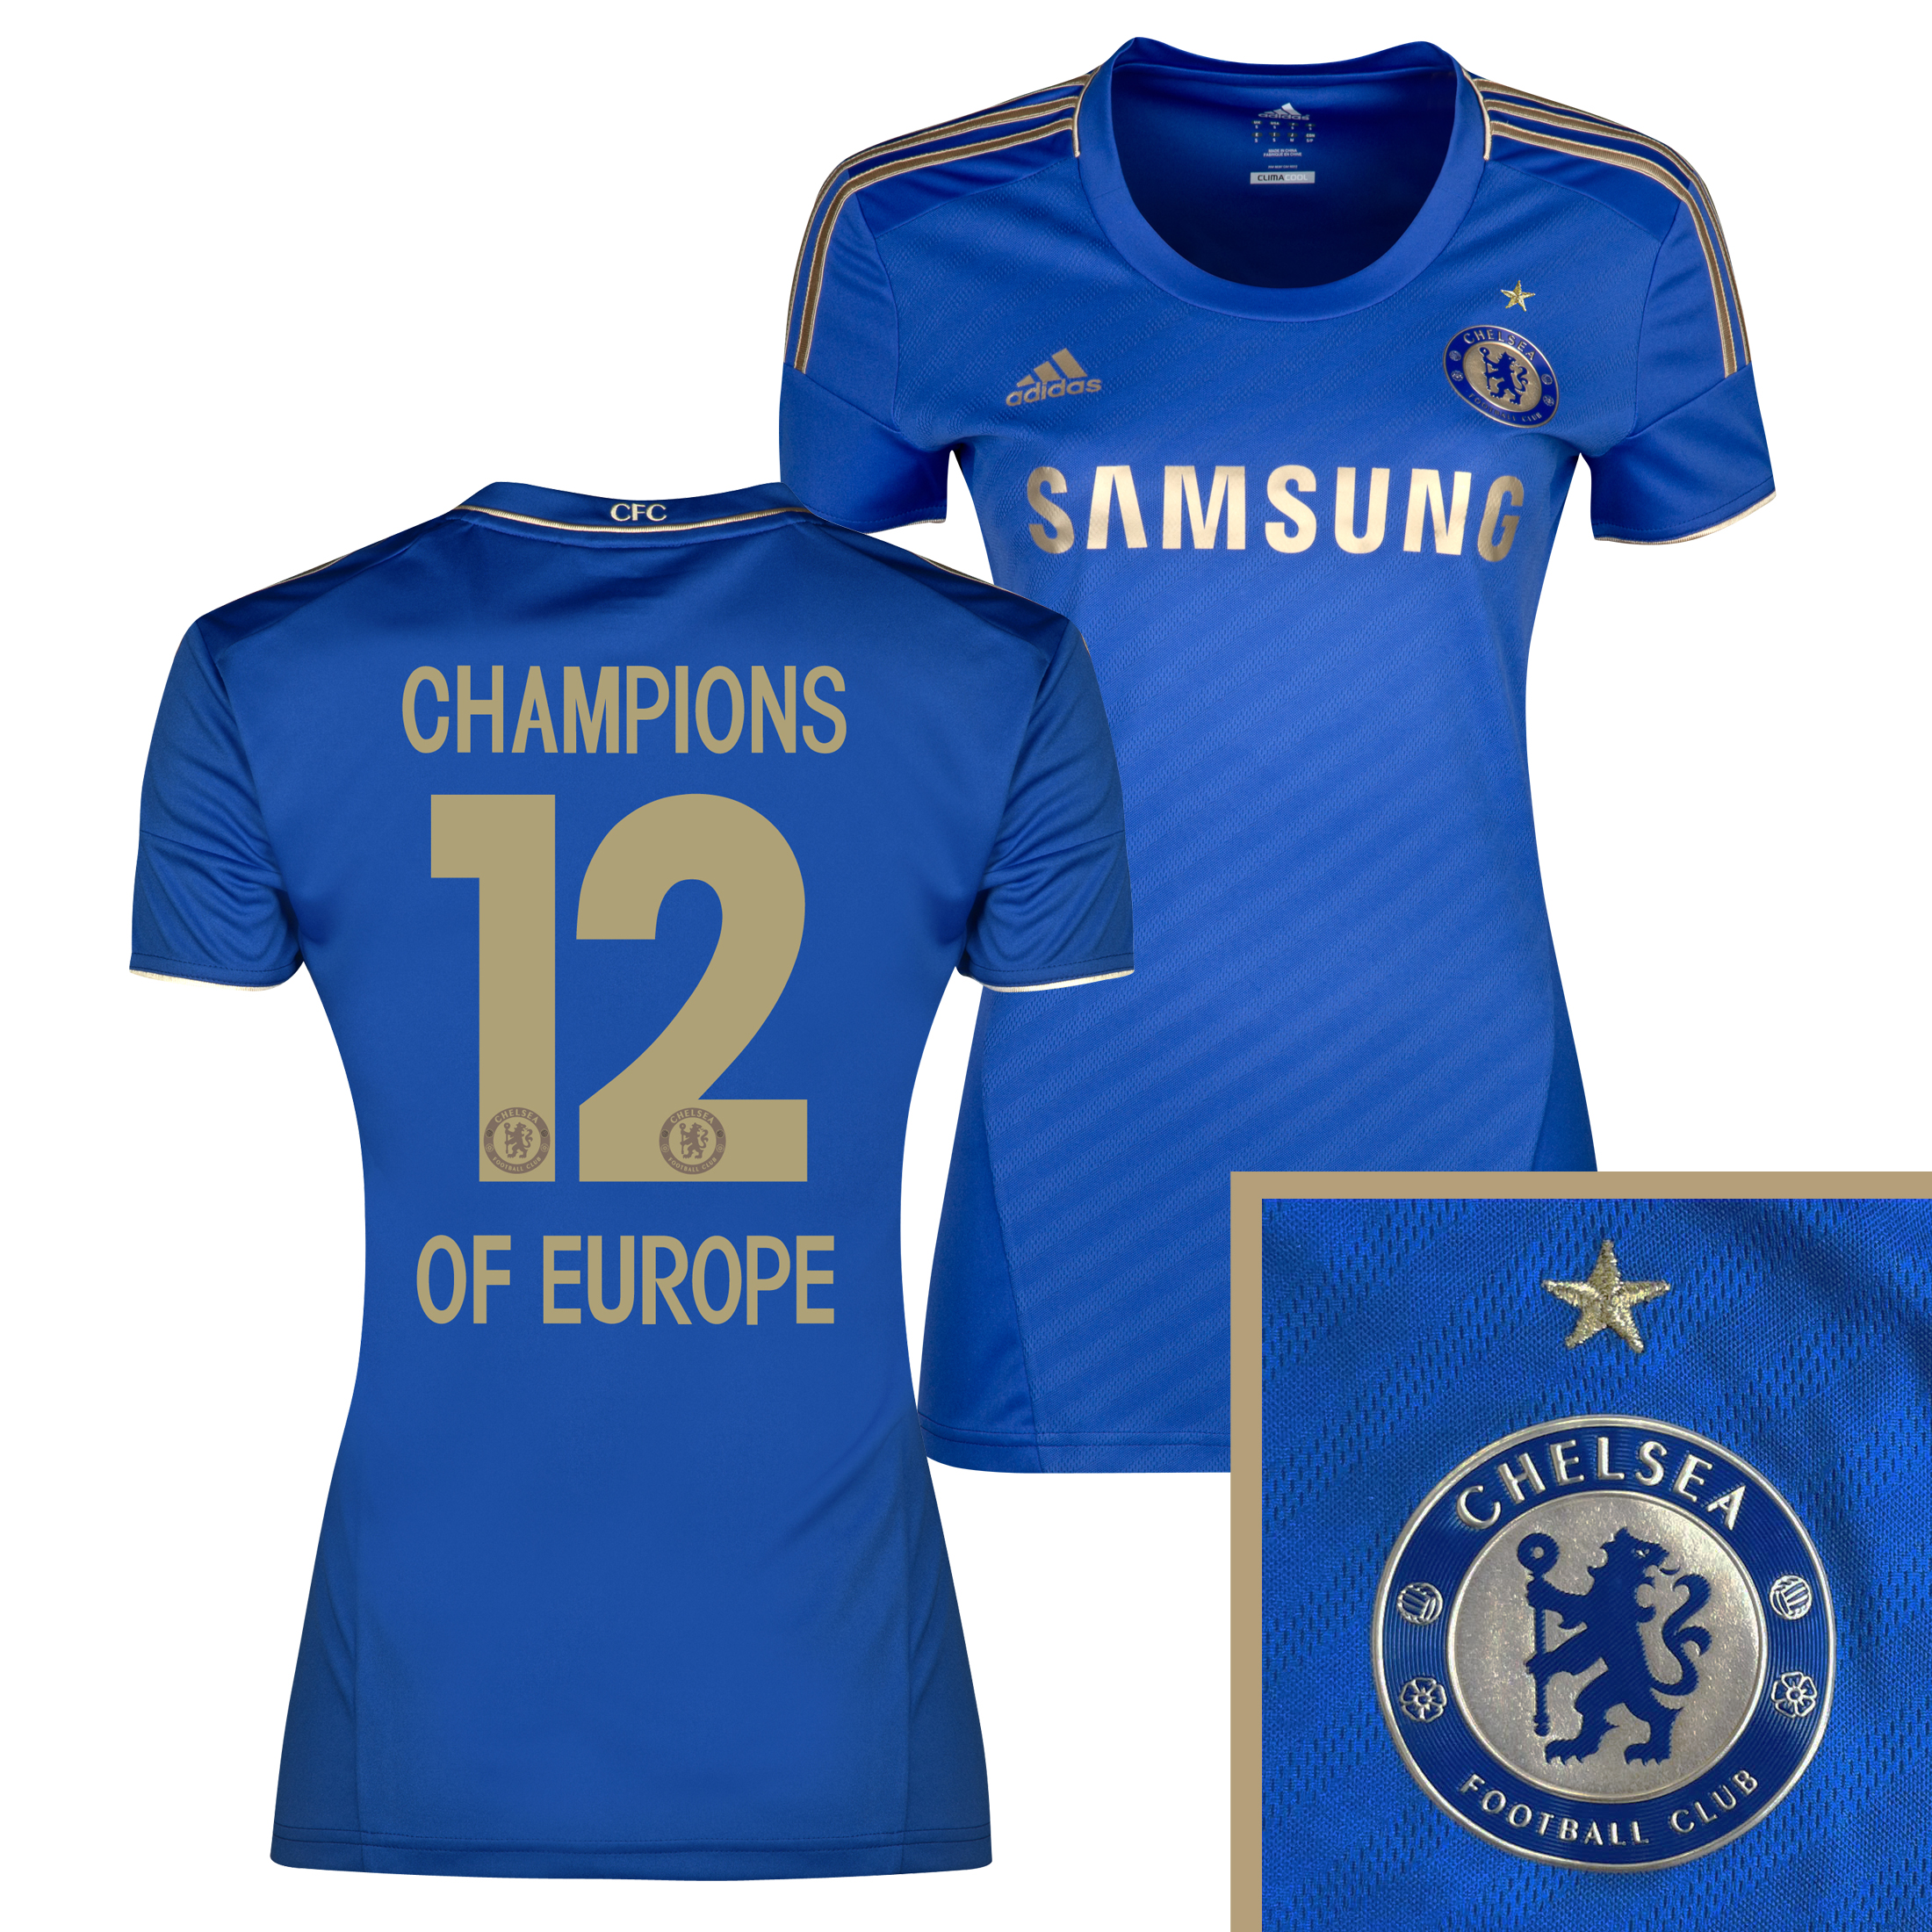 Chelsea Home Shirt 2012/13 - Womens with Champions 12 Printing including Gold Star